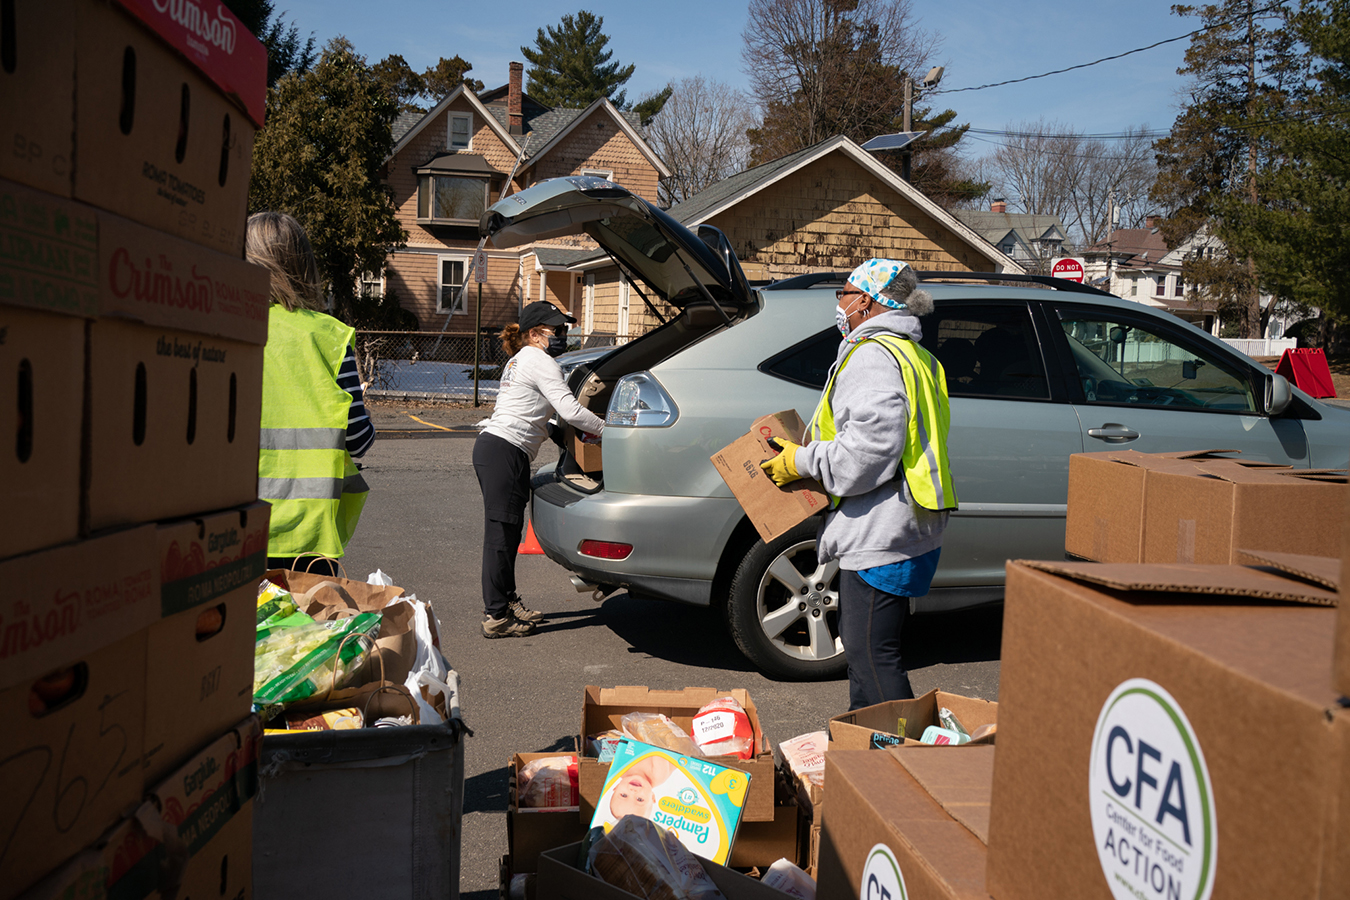 Food pantry volunteers load food into cars